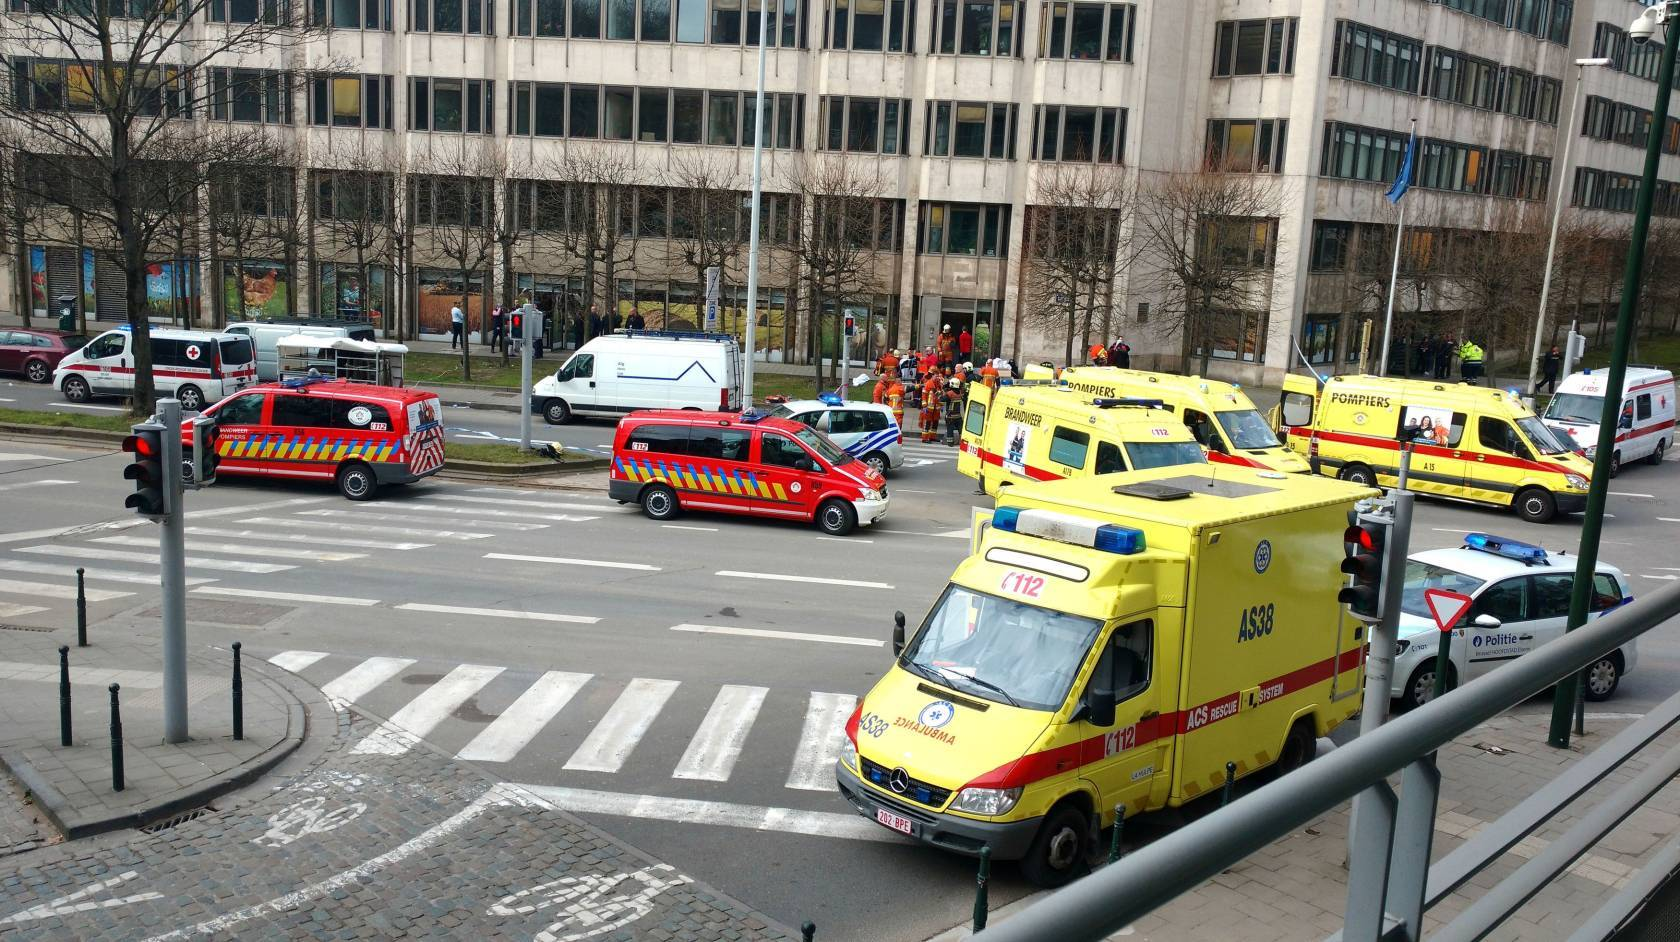 Emergency services after a explosion in a main metro station in Brussels.